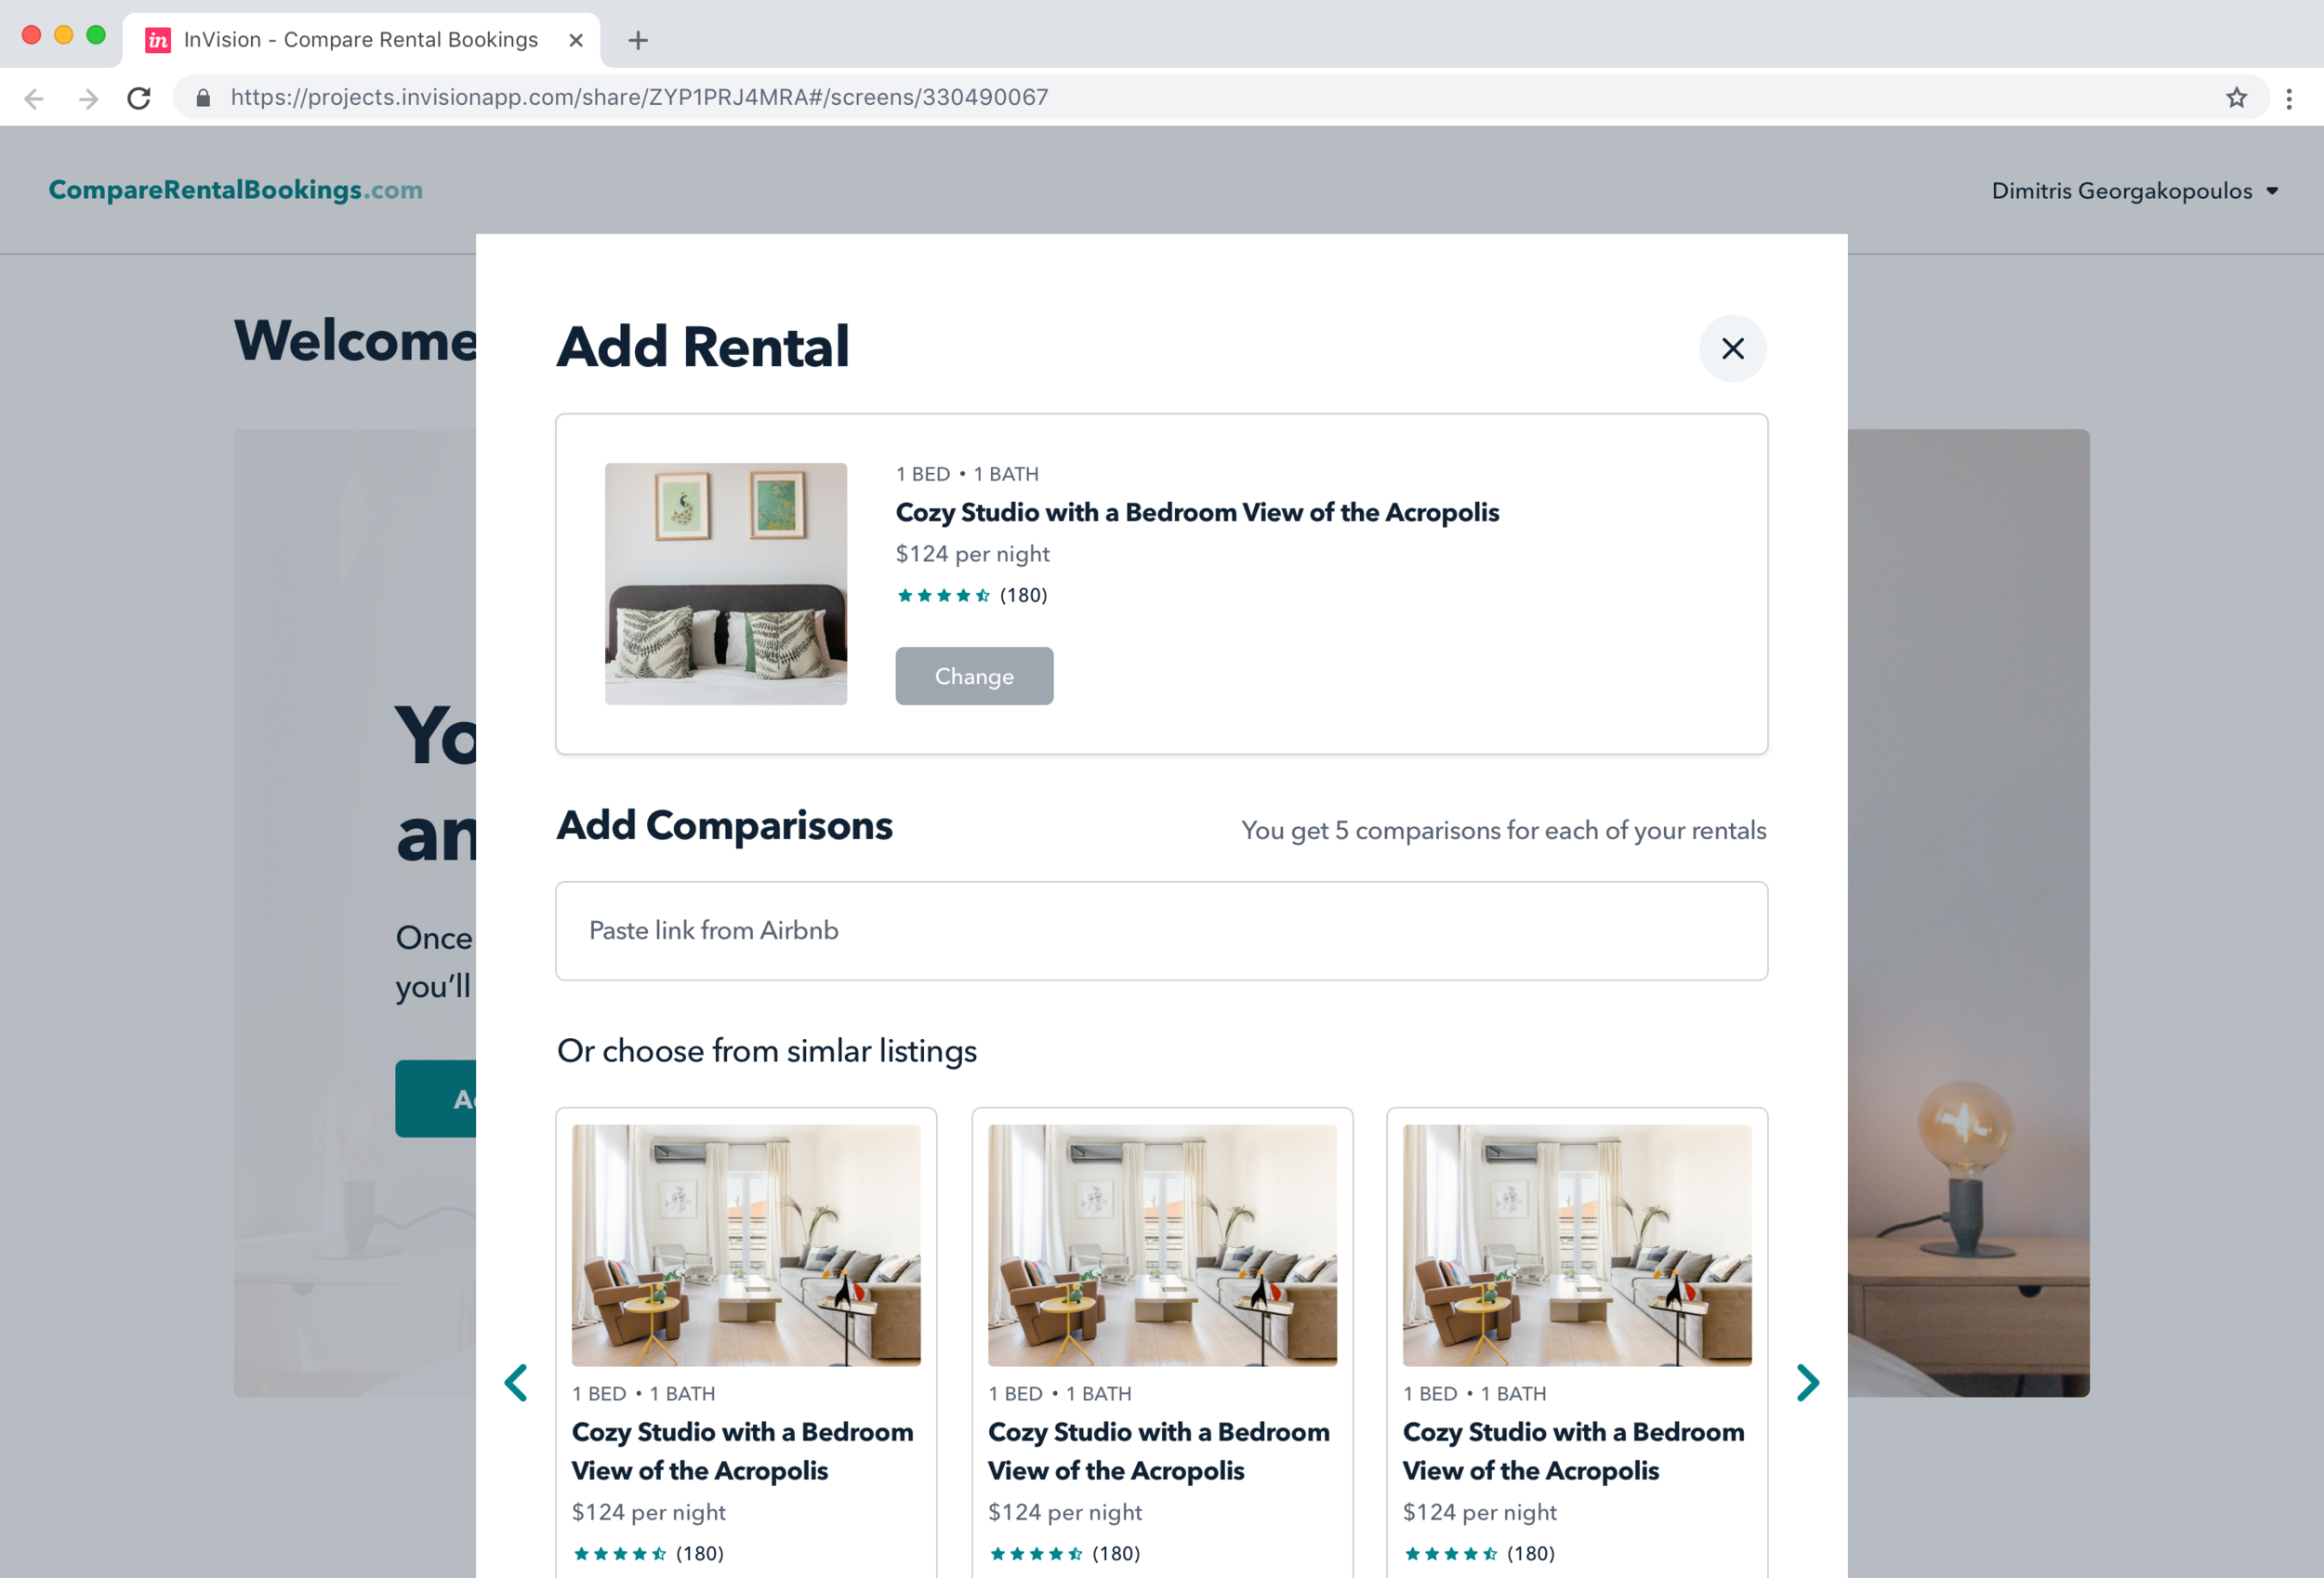 Compare Rental Bookings V3 design (Invision)